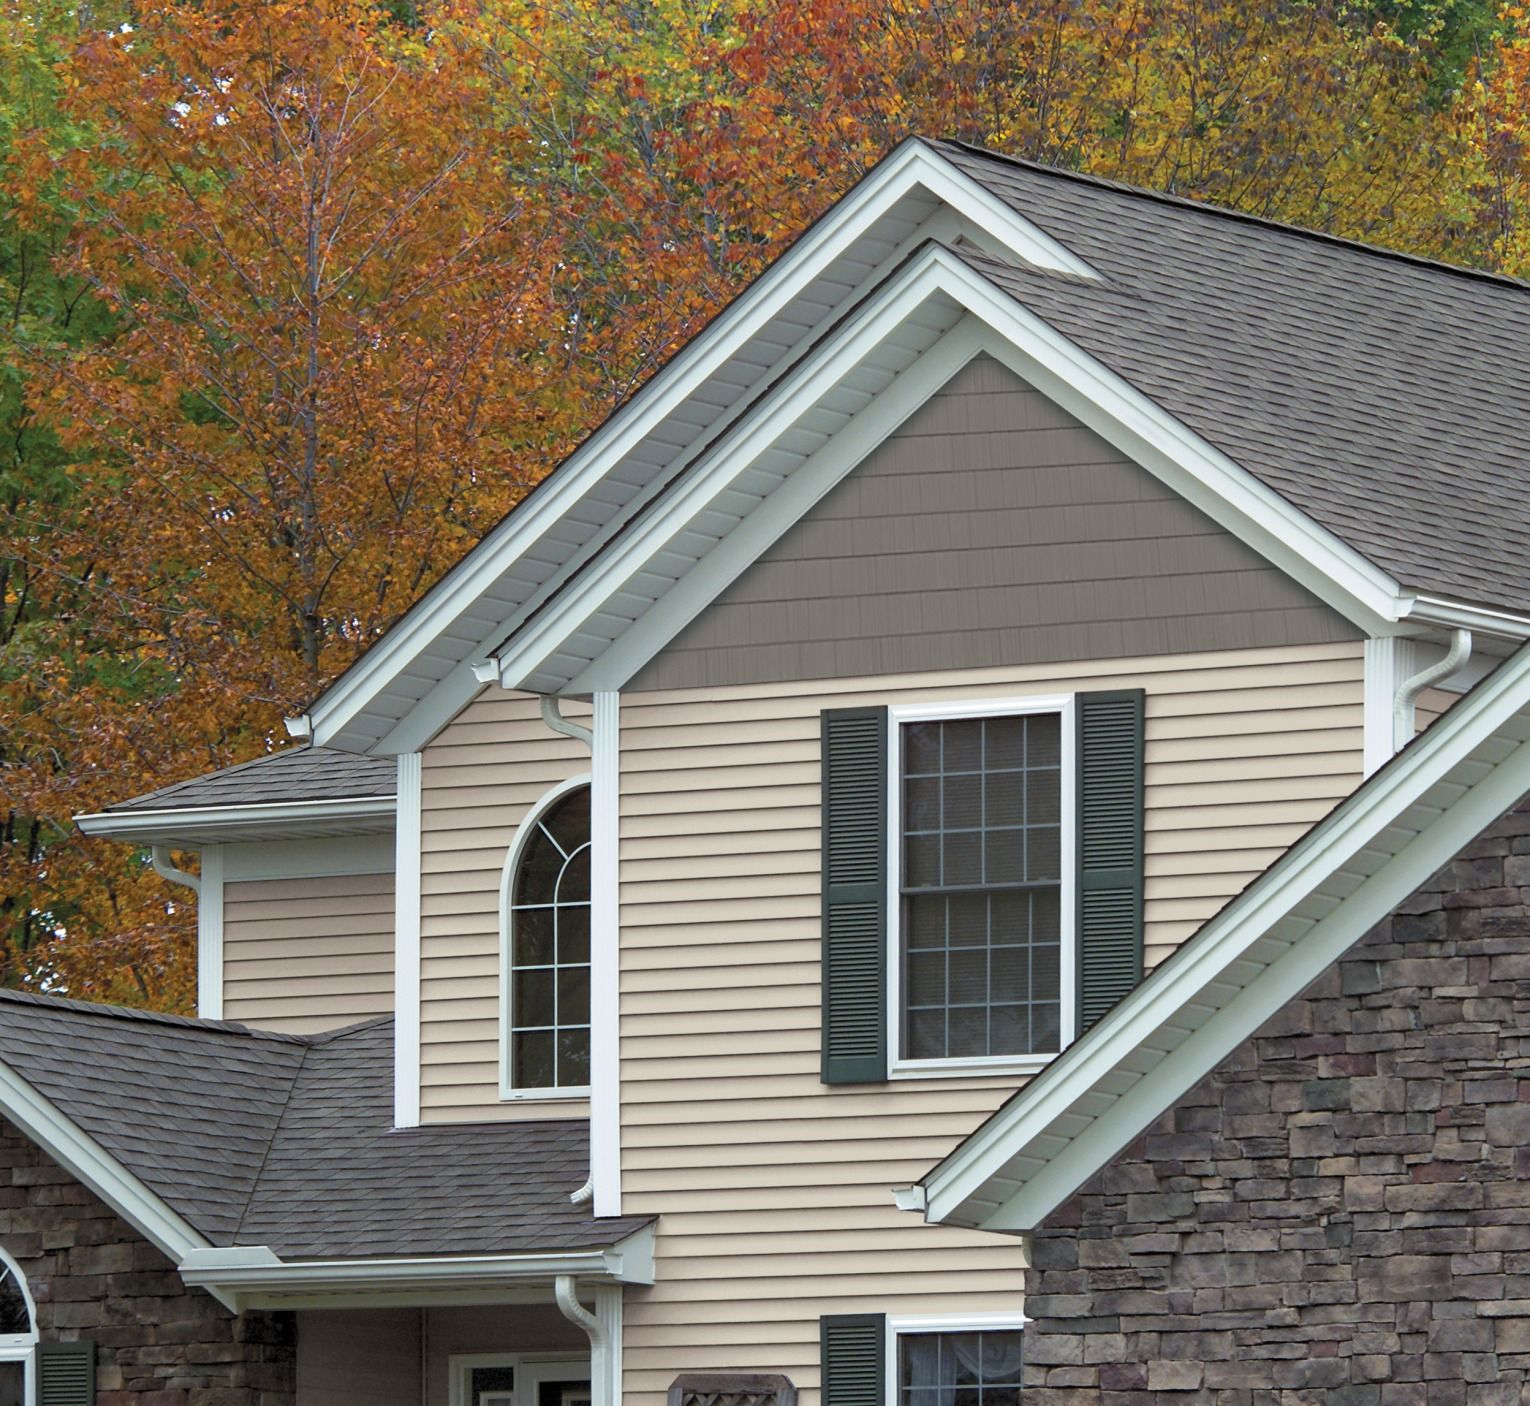 Single 7 Timbercrest Perfection Straight Edge Siding Shingles Add An Air Of Distinction To Any Home Feat Shingle Siding Concrete House Prefabricated Houses